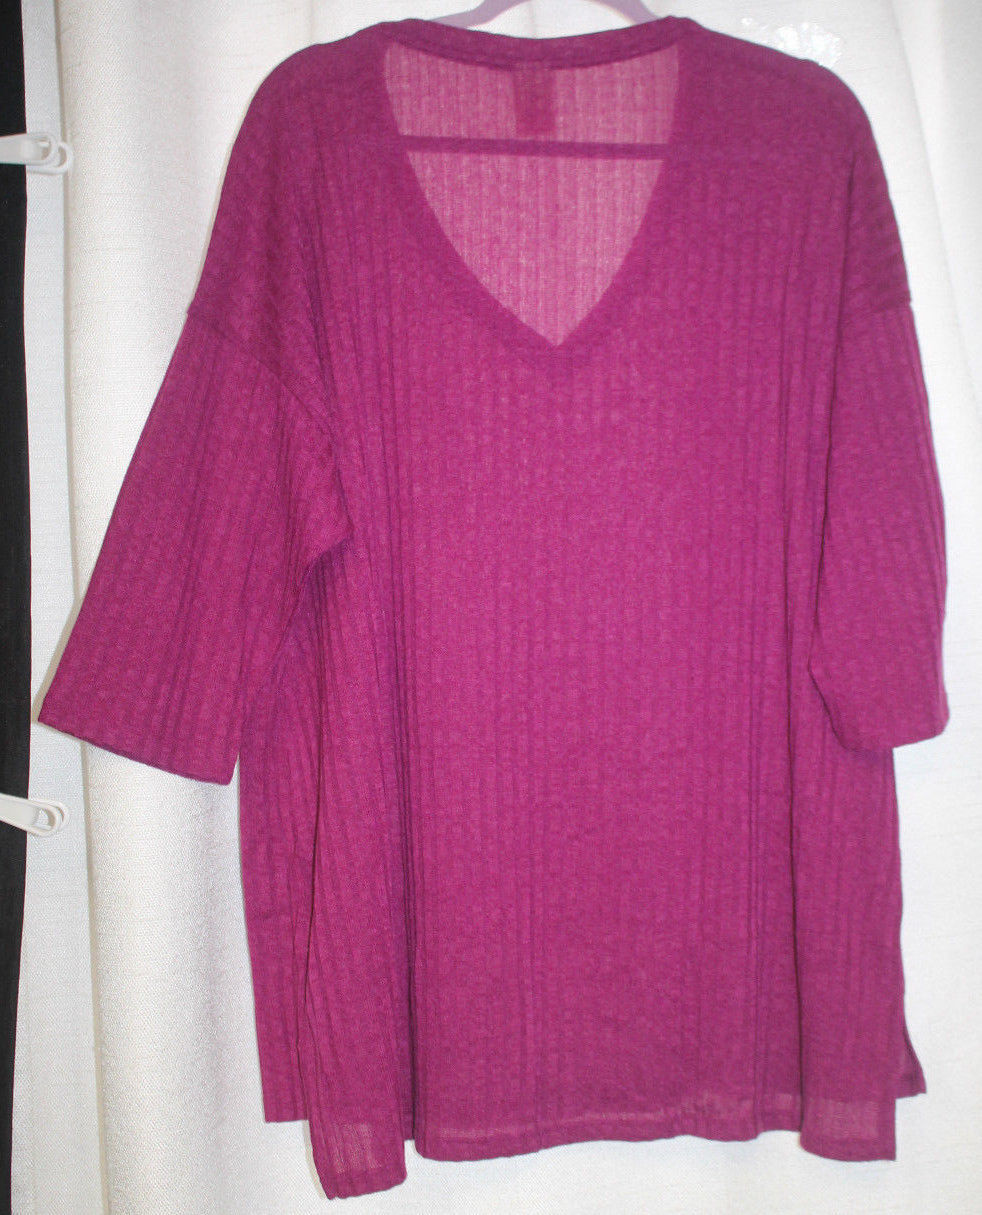 NEW WOMENS PLUS SIZE 2X FADED GLORY BERRY  3/4 SLEEVES HACCI SWEATER KNIT TOP